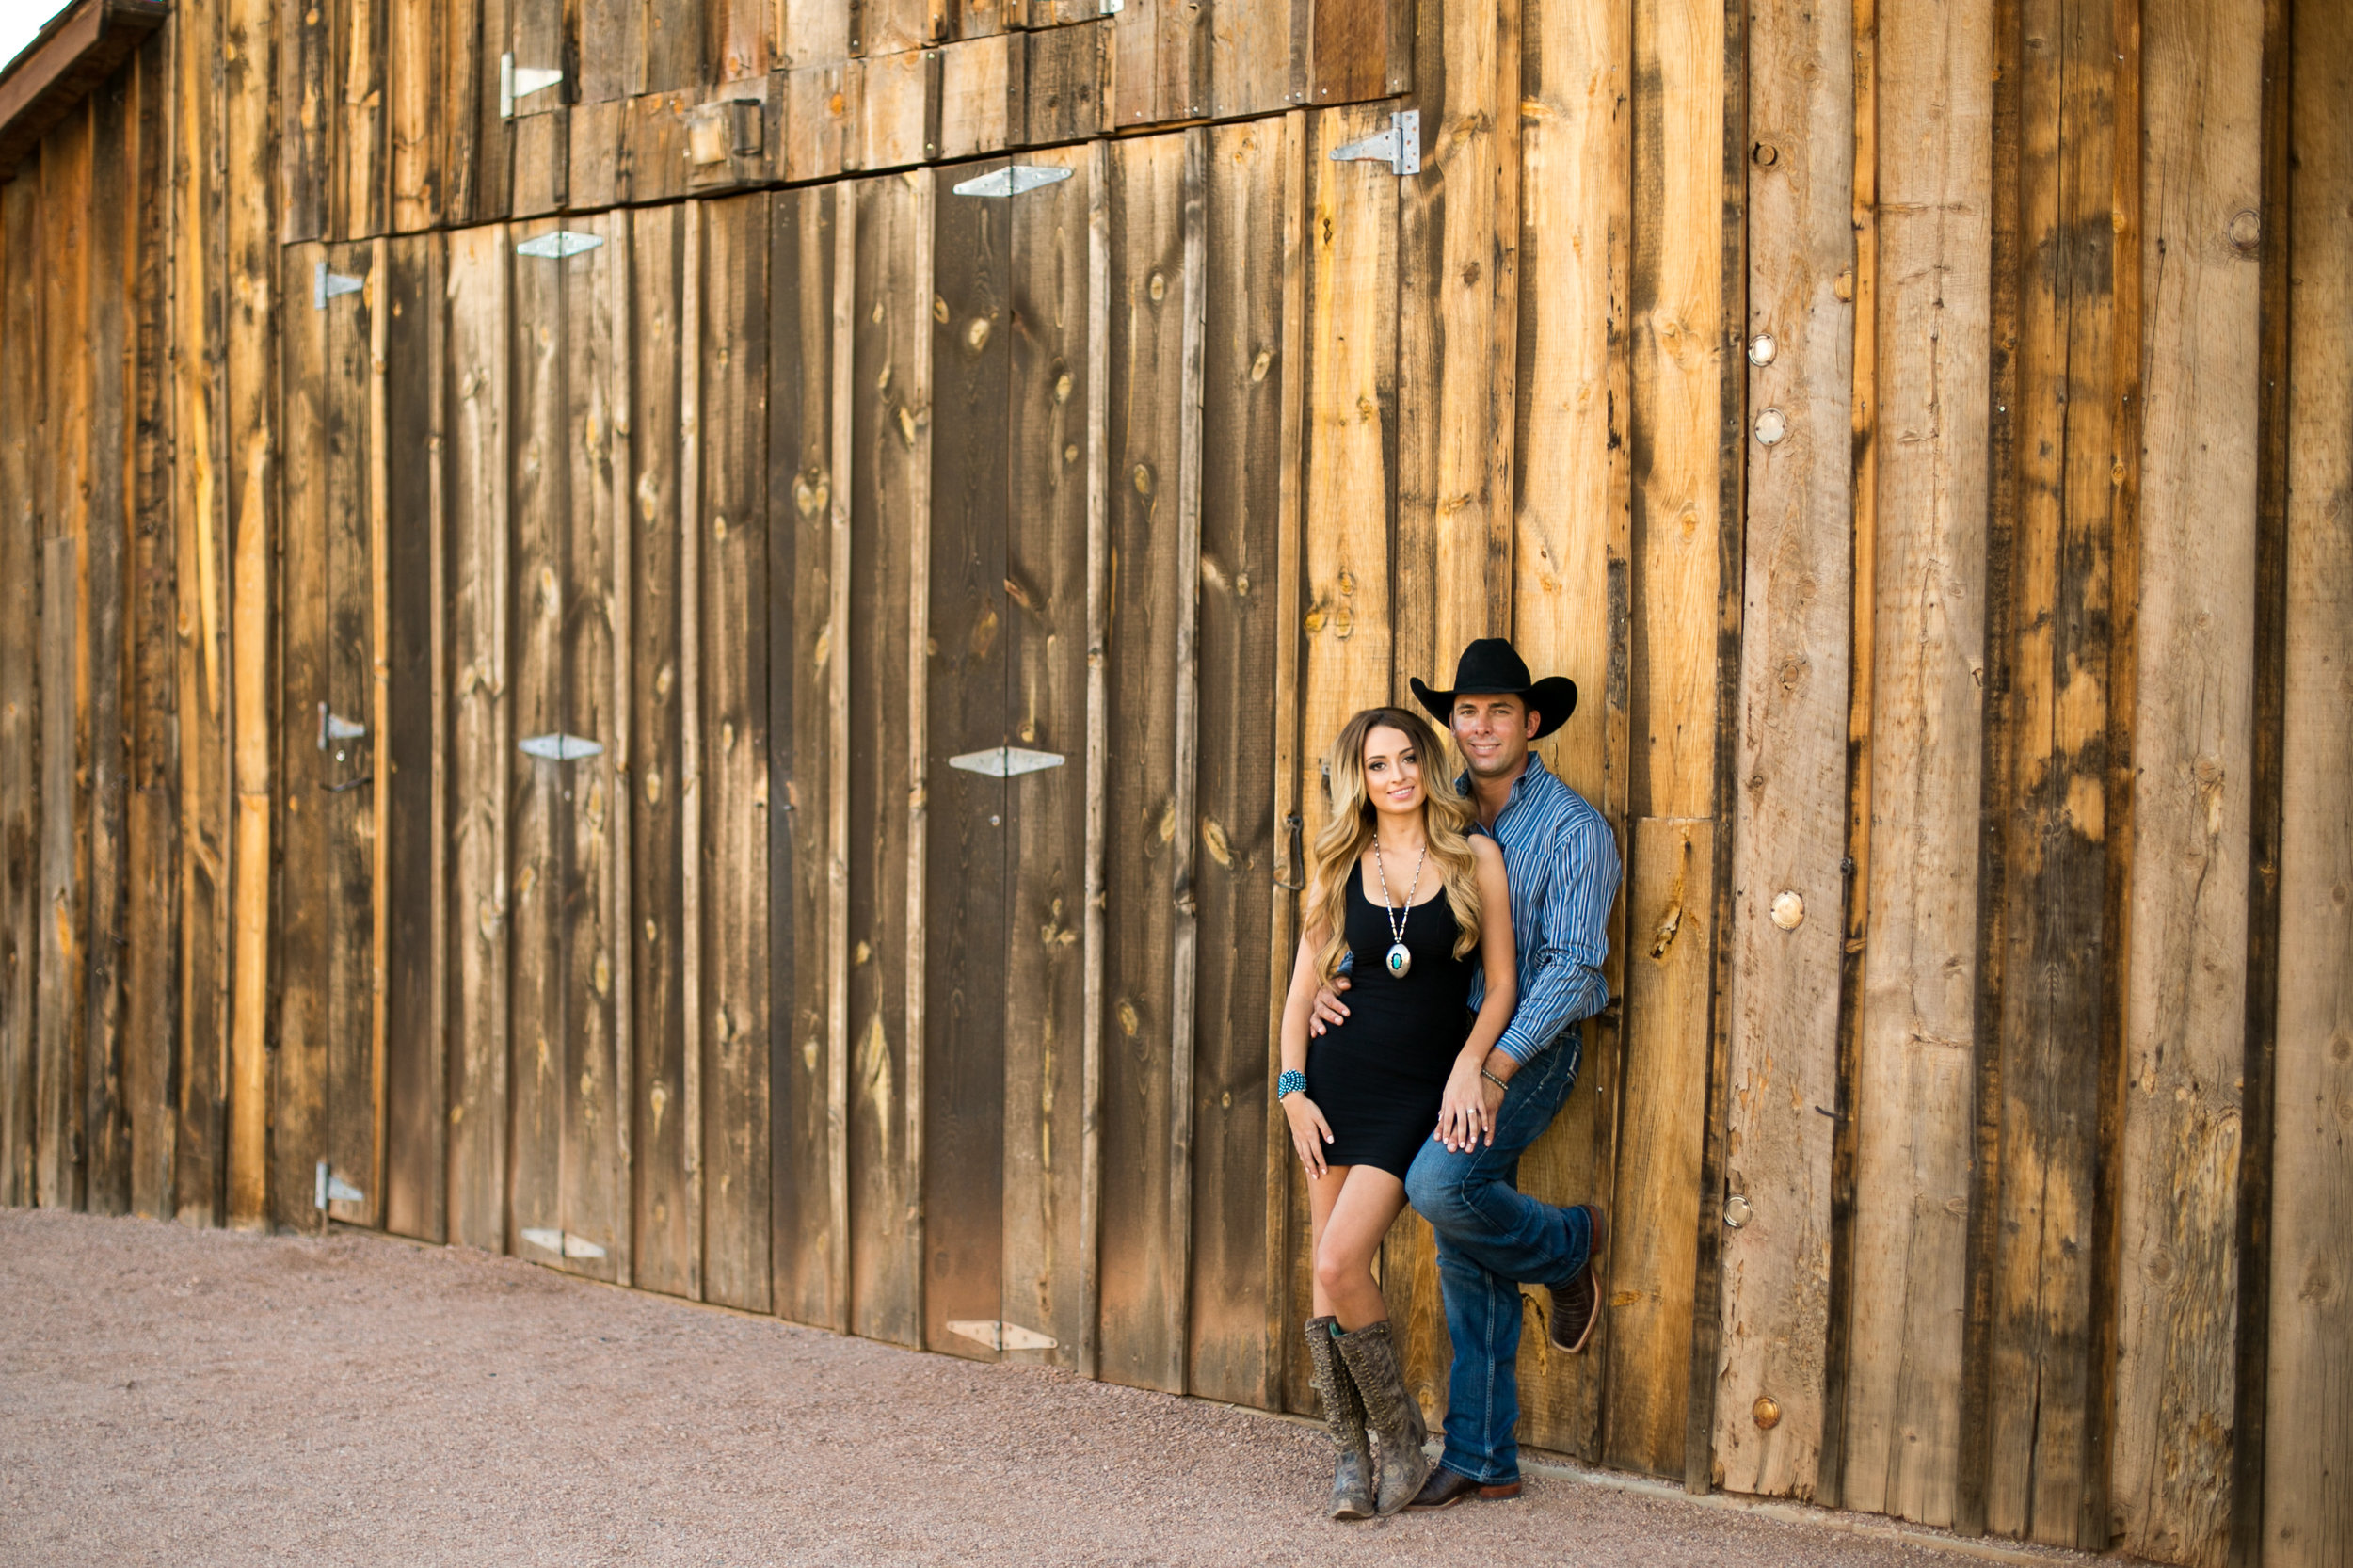 9CountryWesternEngagementPhotography.jpg